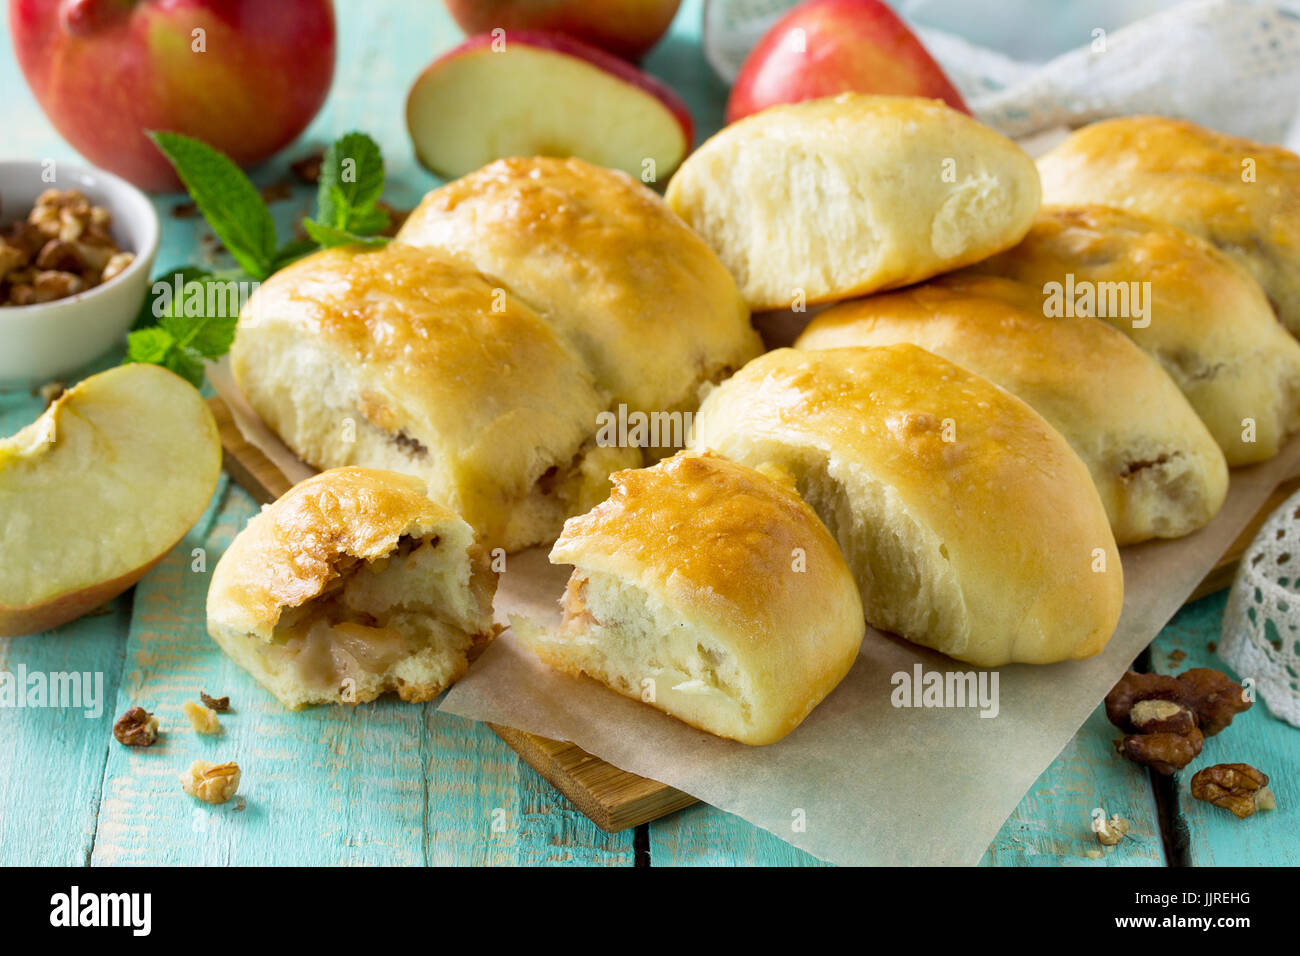 Homemade apple pies with fresh apples and walnuts from yeast dough on a kitchen wooden table. Apple patties on the - Stock Image